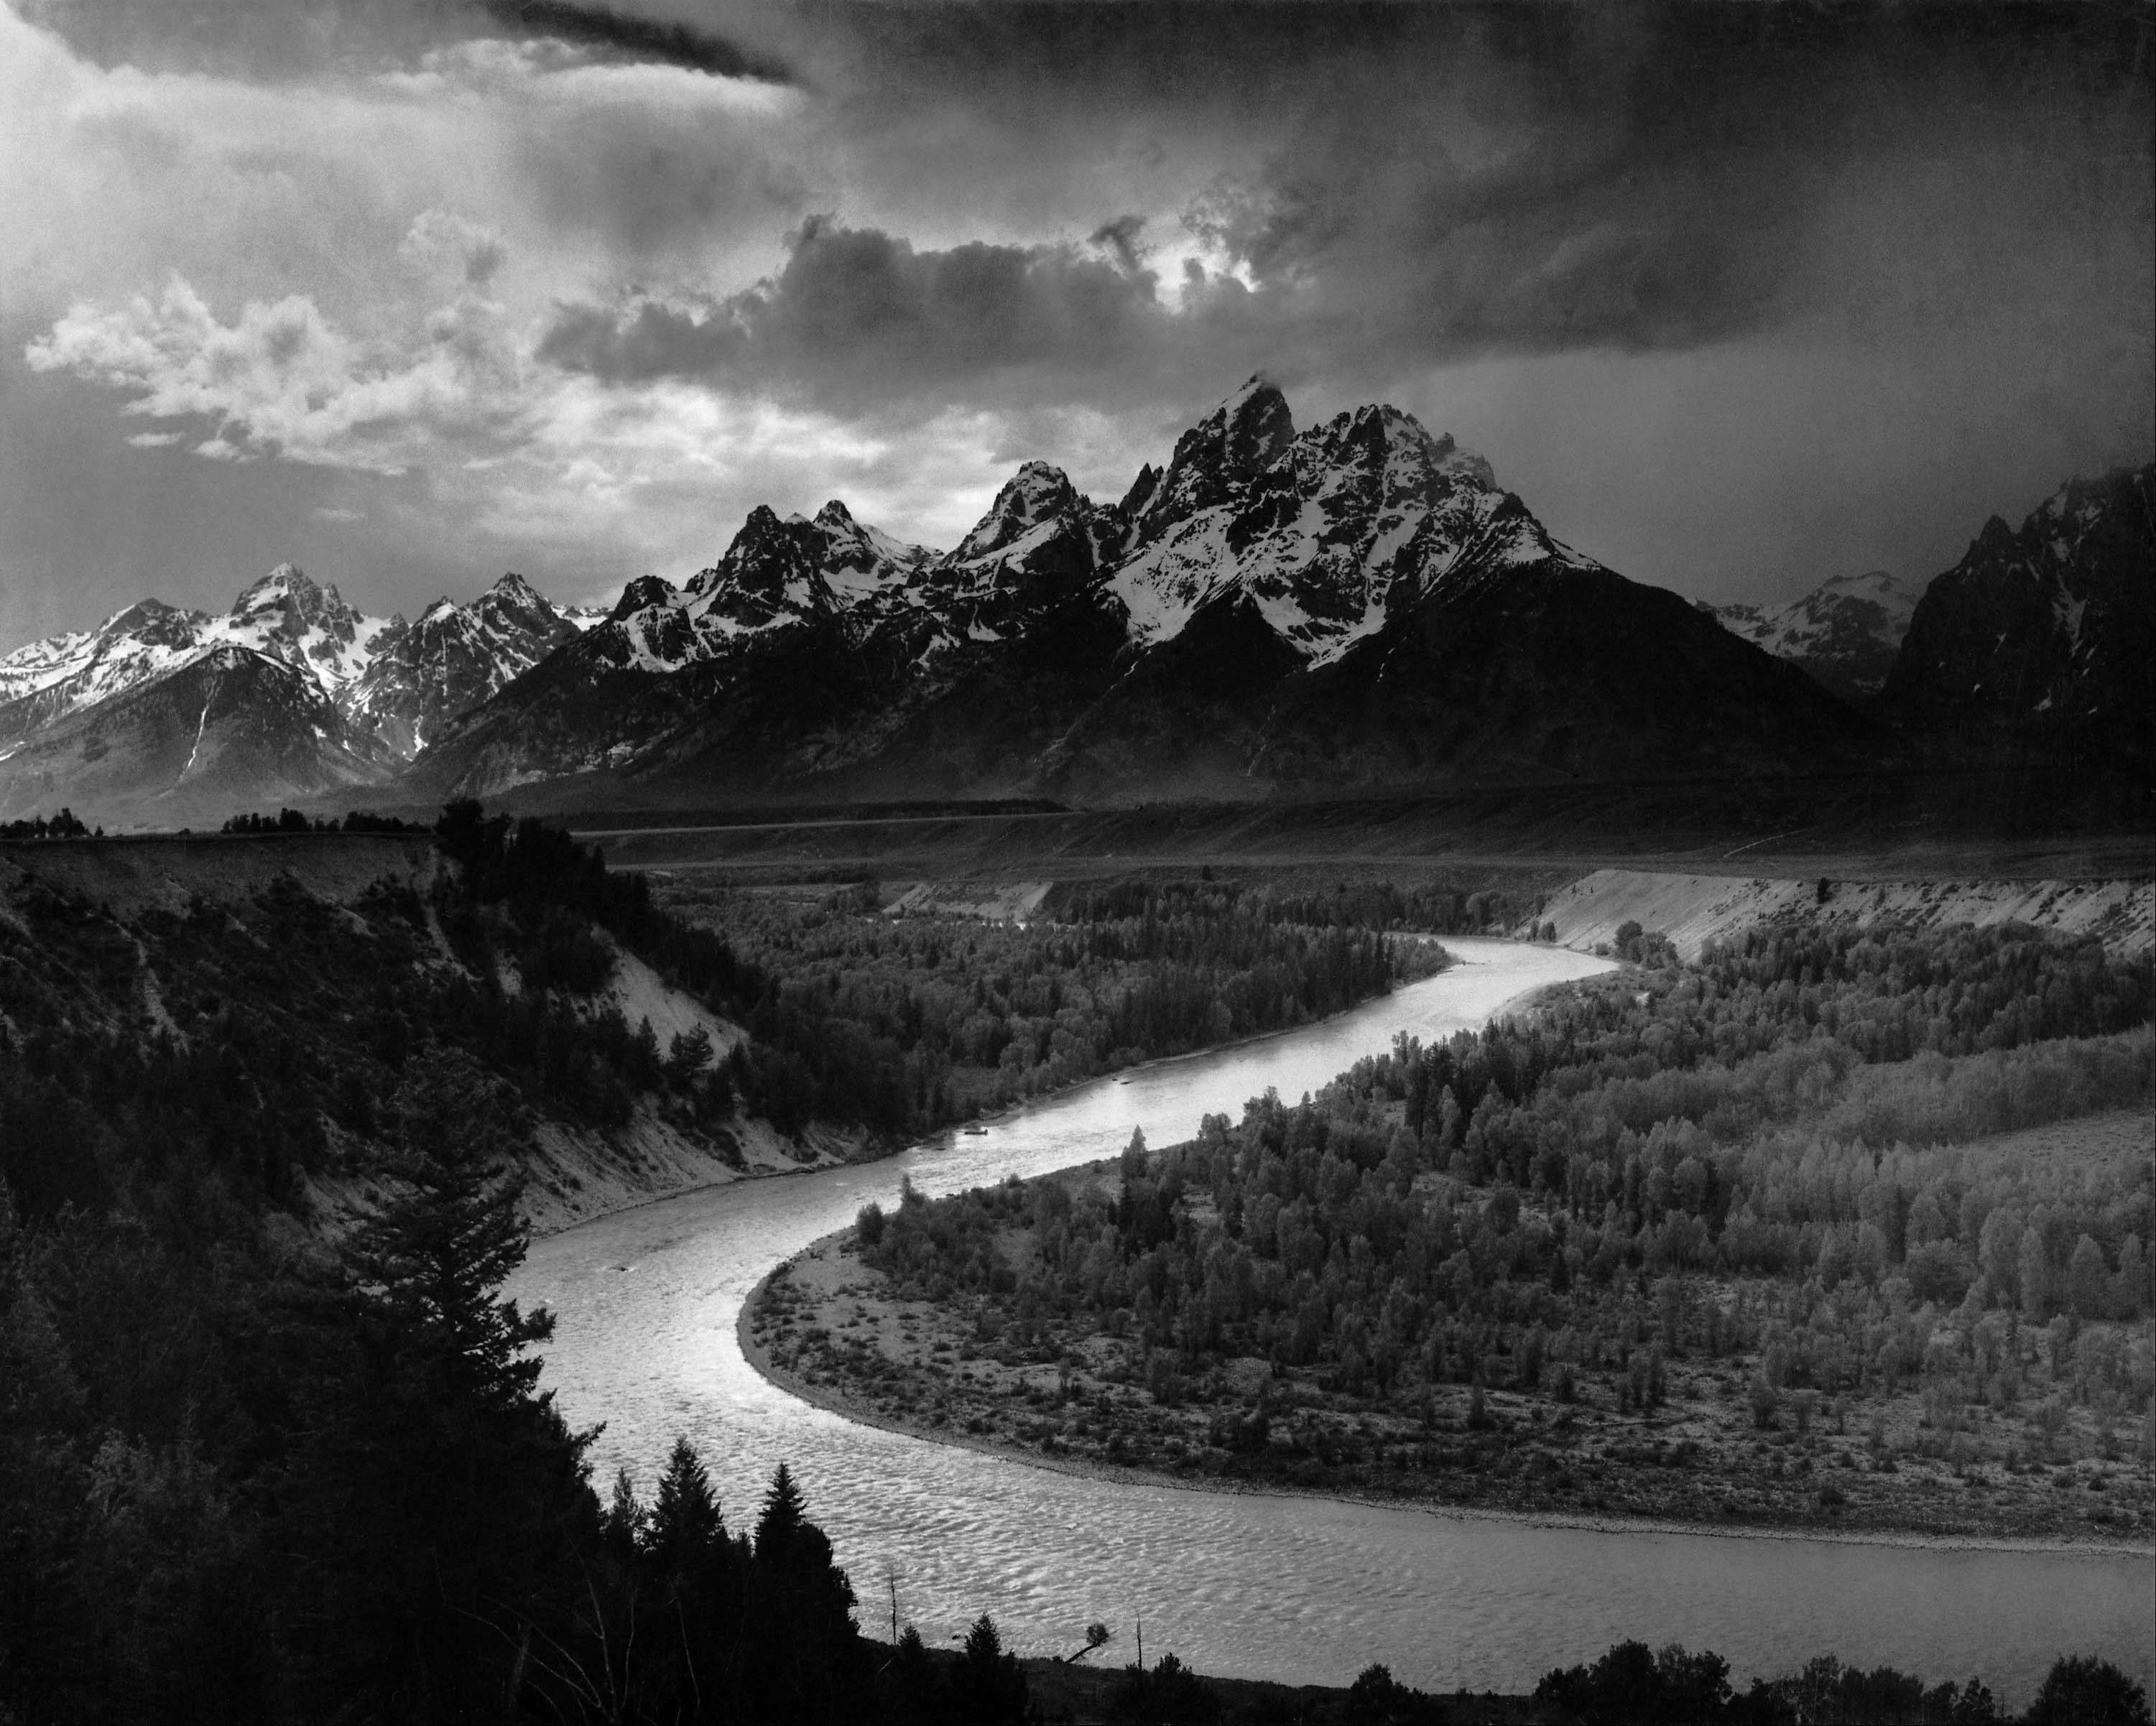 �The Tetons and the Snake River� is part of the new national touring exhibition featuring works by celebrated nature photographer Ansel Adams (1902-1984), Sept. 17 through Jan. 8, 2012 at the Lake County Discovery Museum near Wauconda.